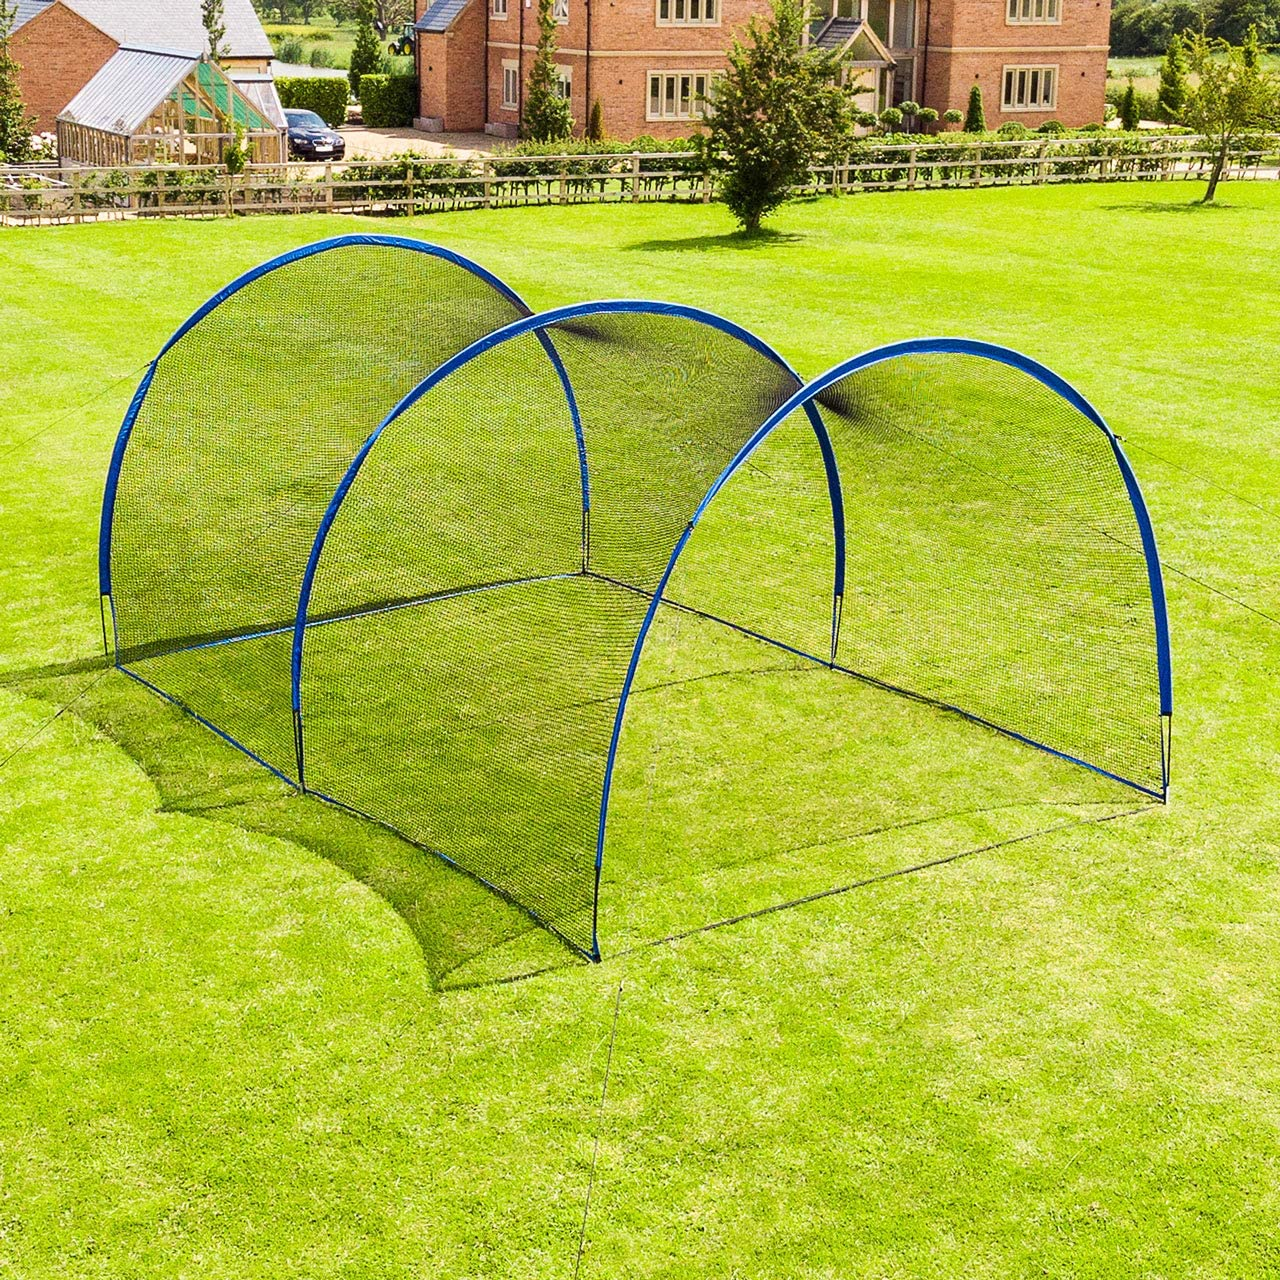 Fortress Pop-Up Baseball Batting Cage | Backyard Batting & Pitching Practice [20ft, 40ft, 60ft or 80ft Net Length] | Baseball Net for Hitting and Pitching